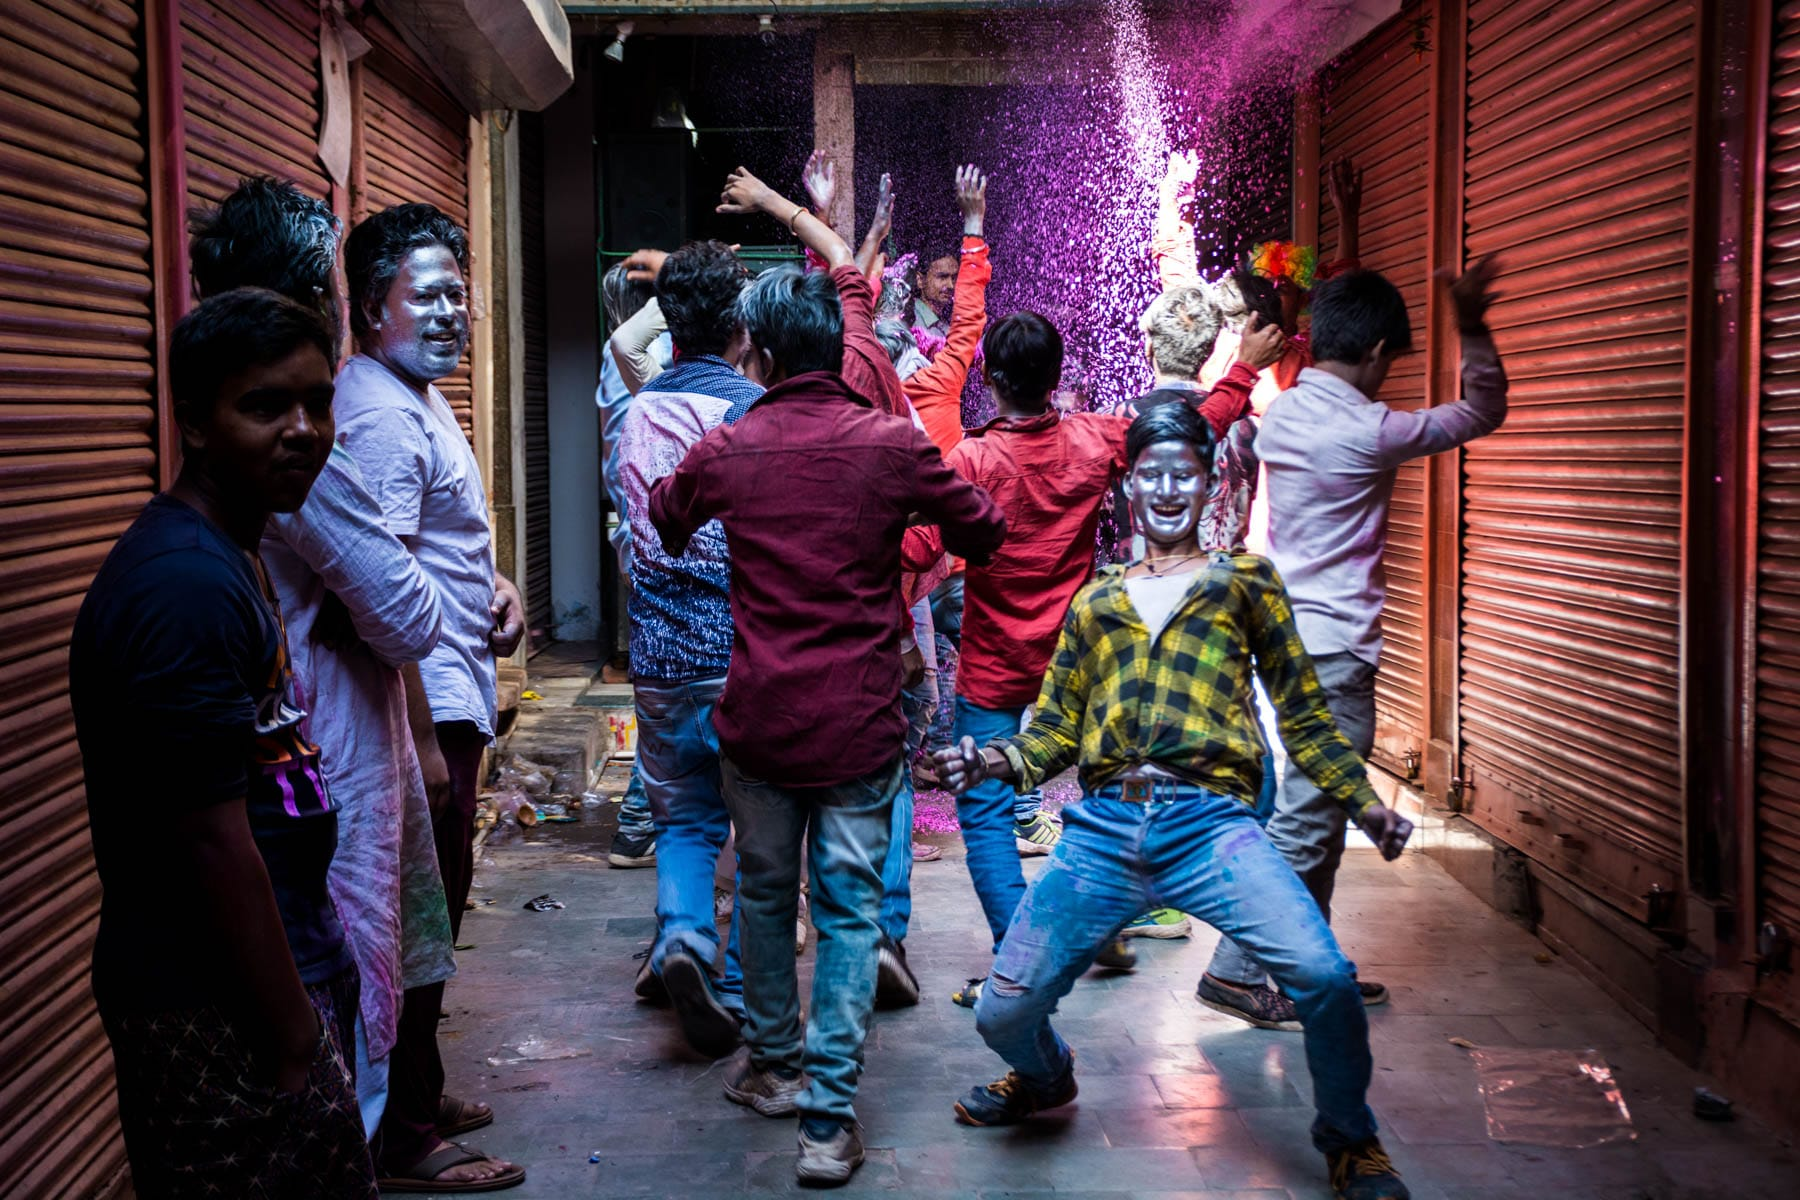 Celebrating Holi in Varanasi as a Female - Boys dancing in the streets - Lost With Purpose